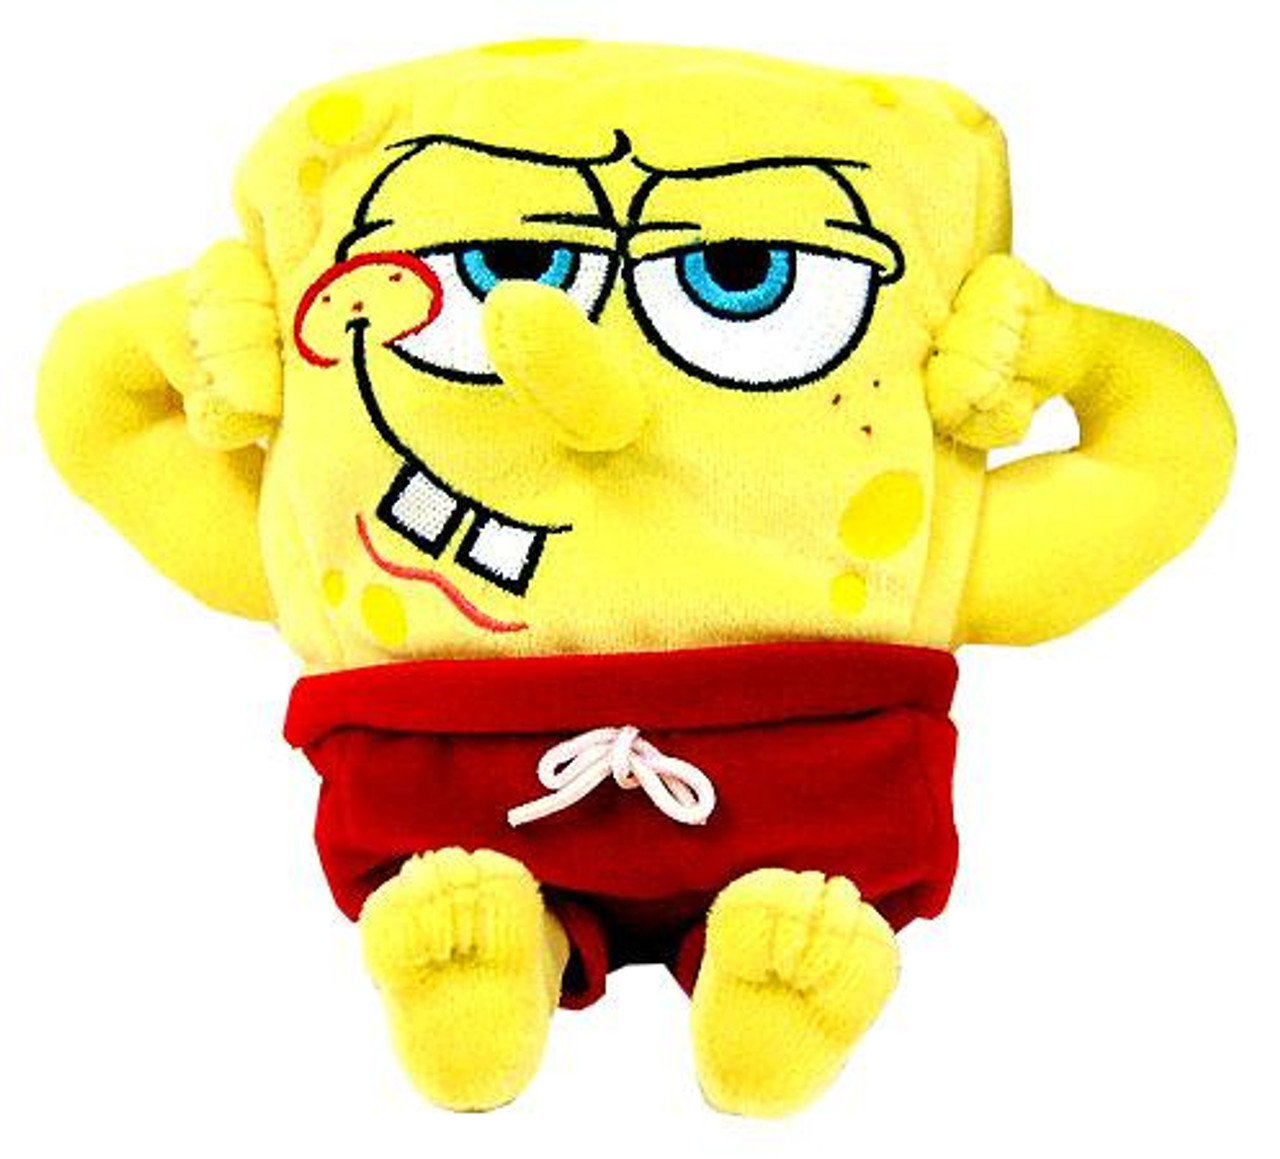 Spongebob Squarepants MuscleBob BuffPants 6-Inch Plush